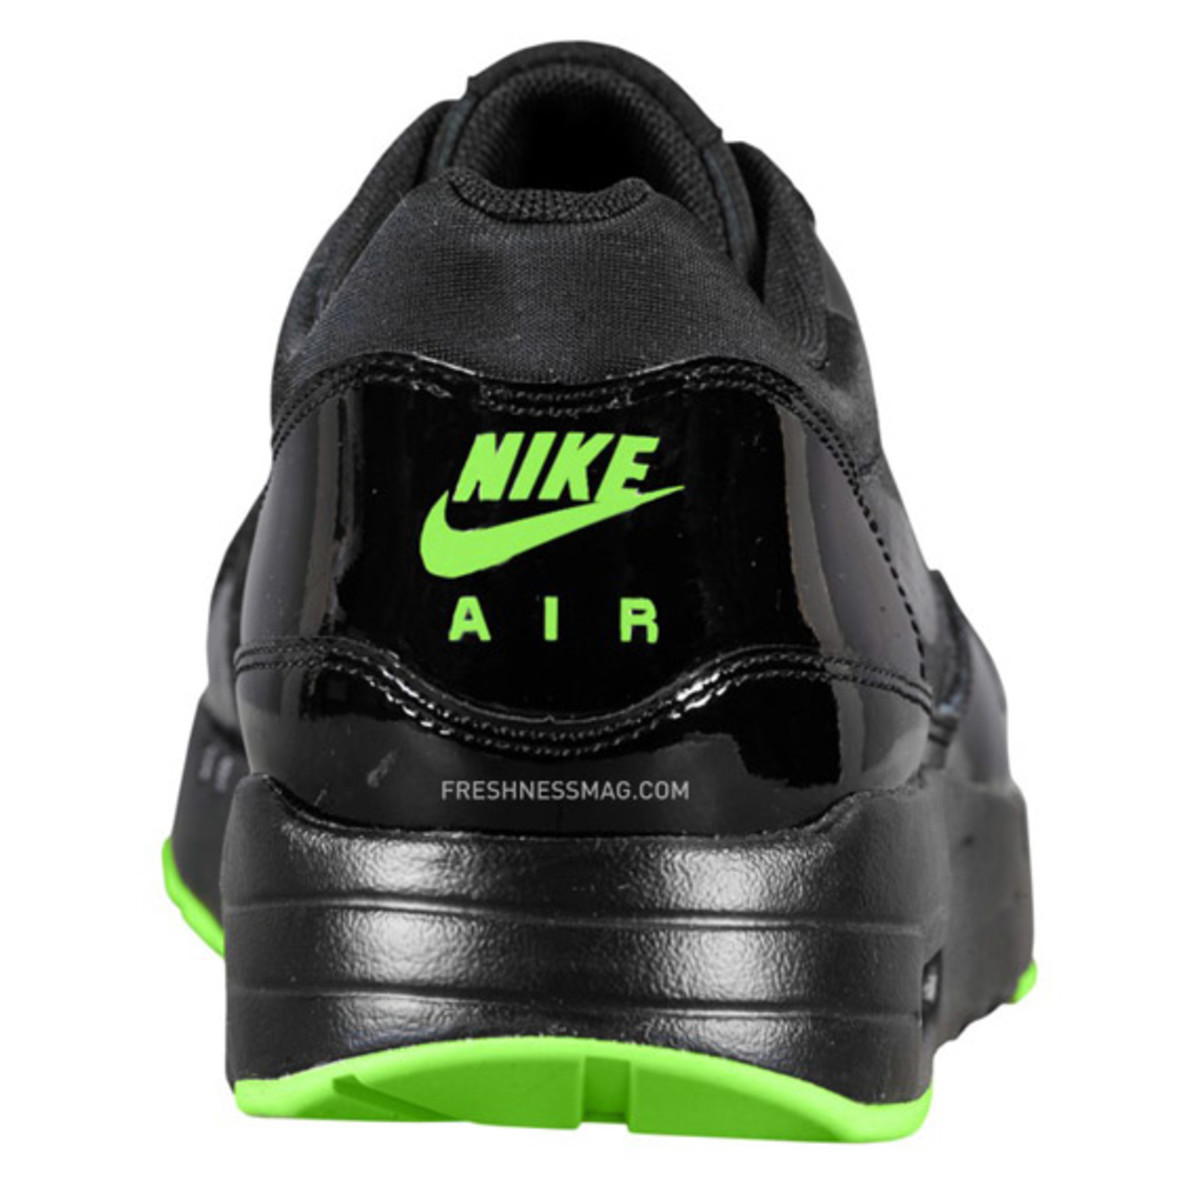 nike-air-maxim-1-air-attack-green-05